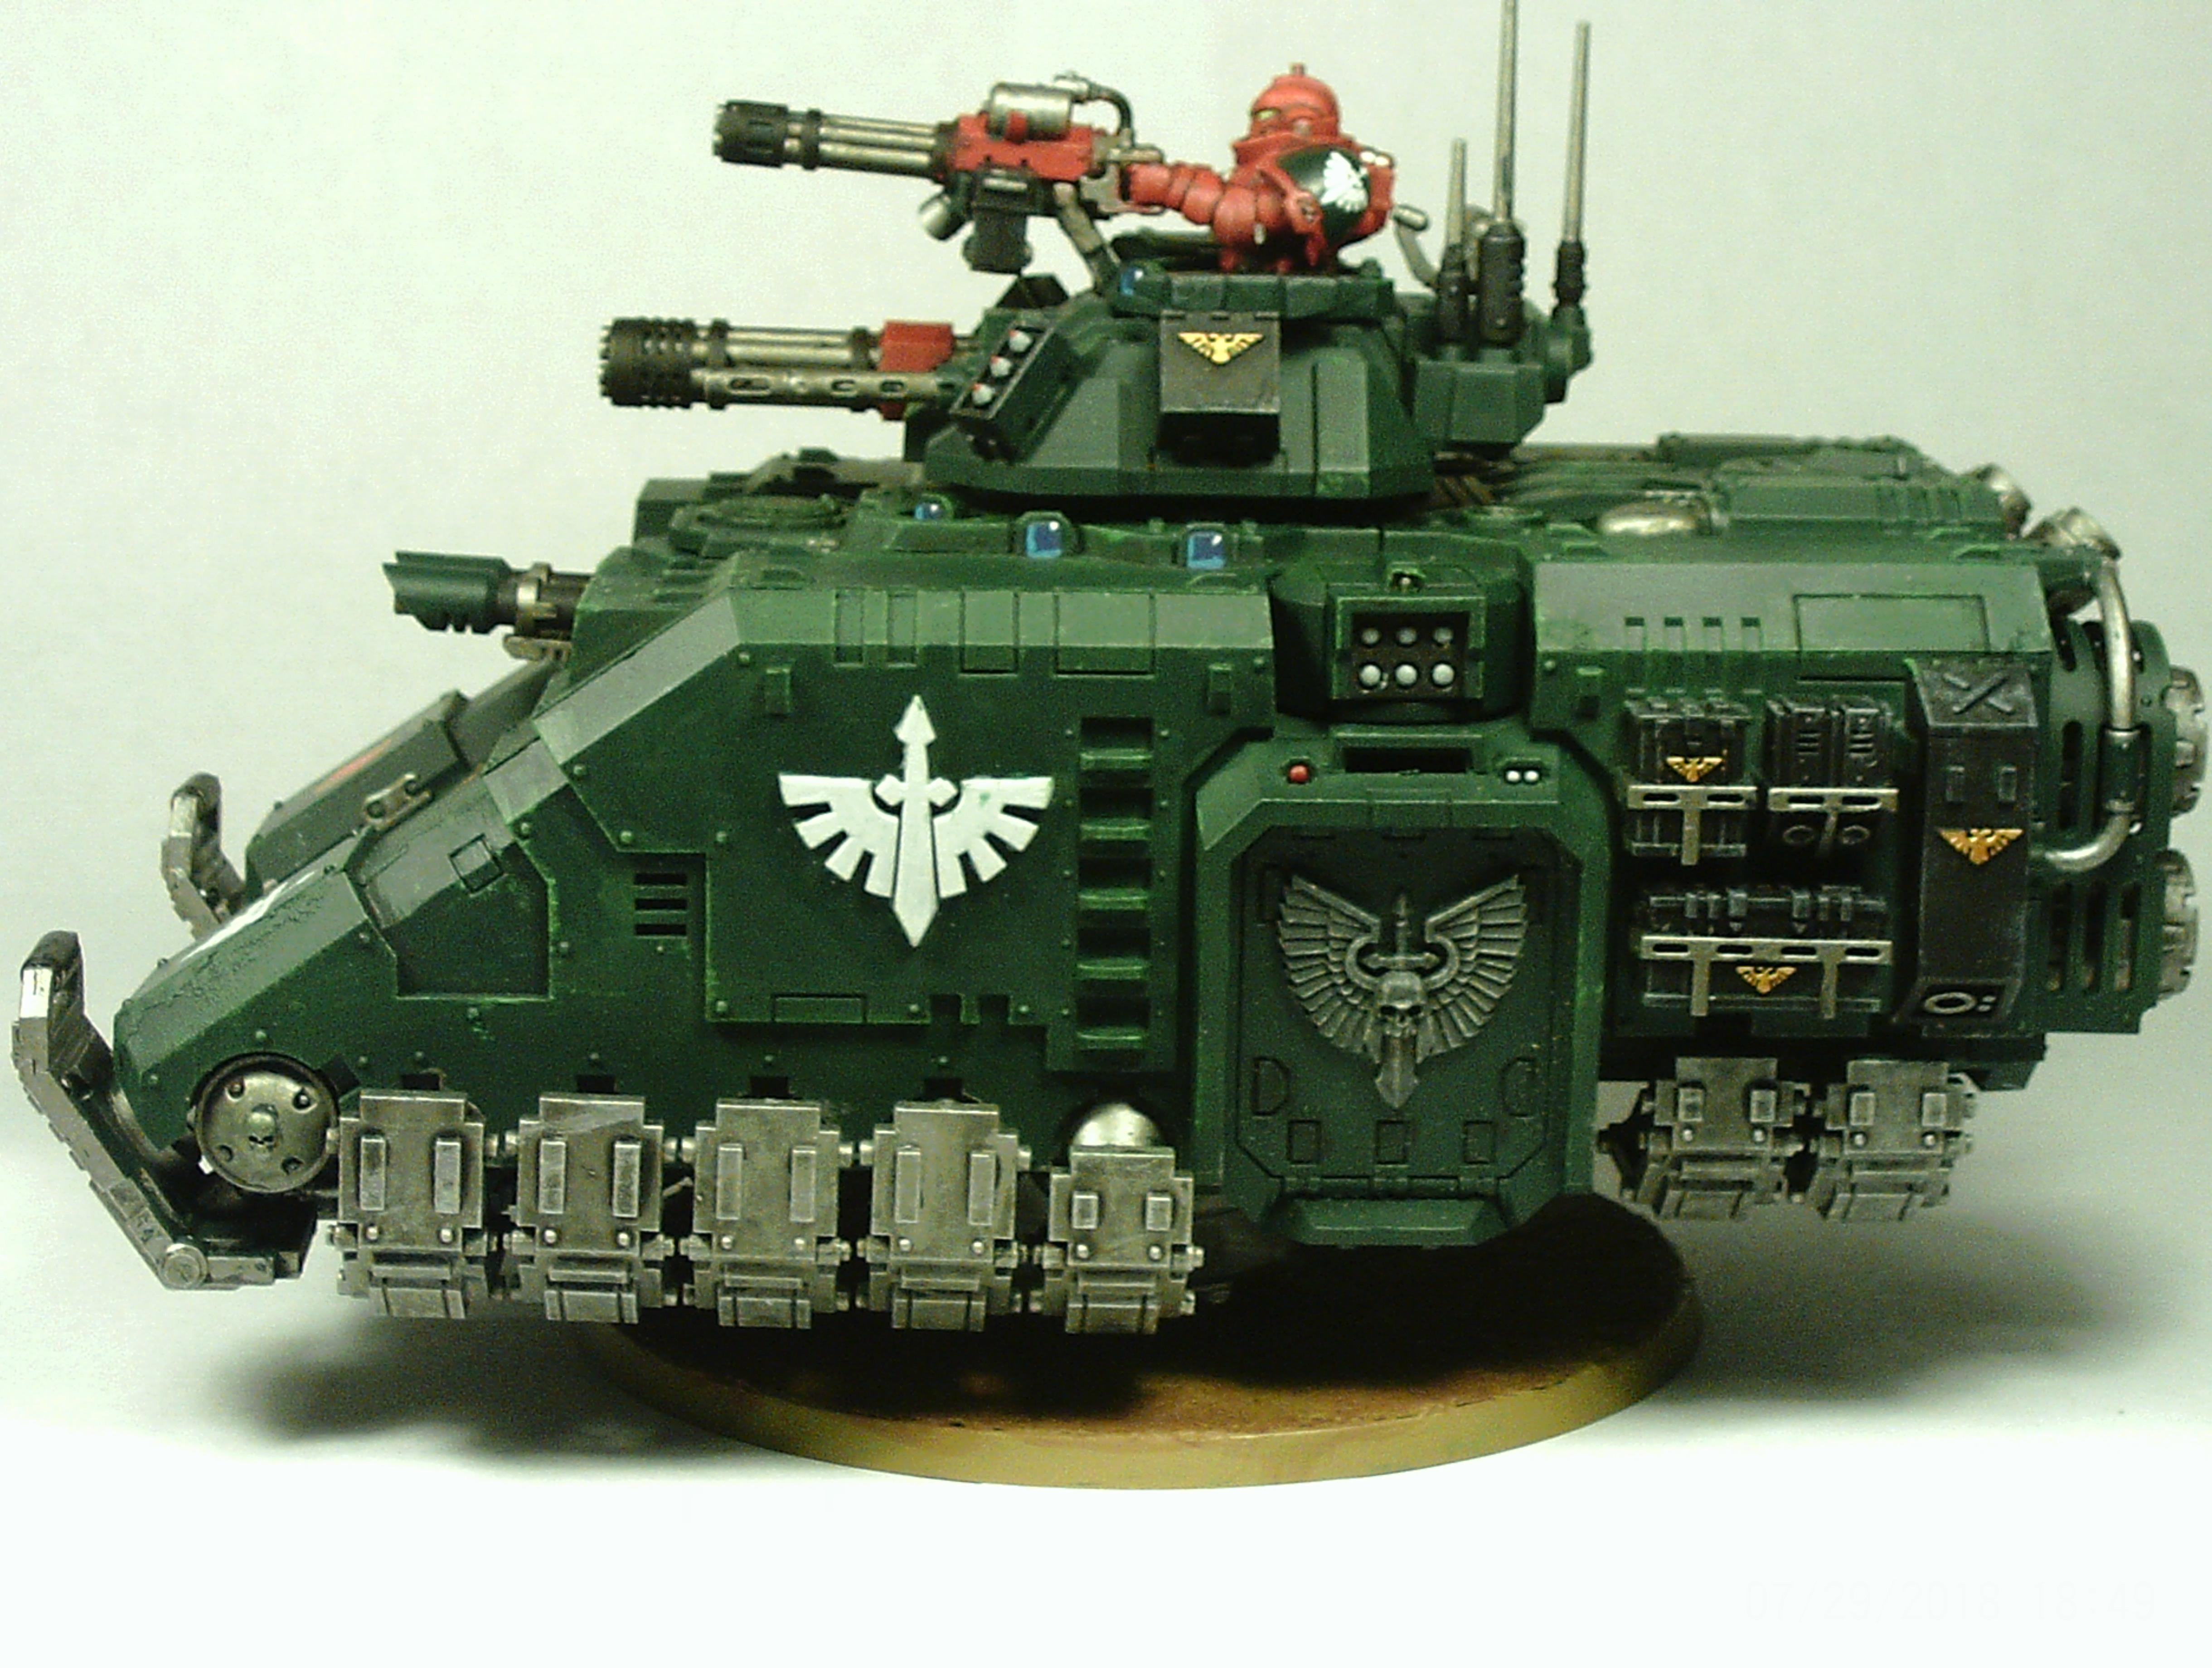 Angel, Box, Dark, Flying, Heavy, Metal, Primaris, Repulsor, Space, Space Marines, Tank, Transport